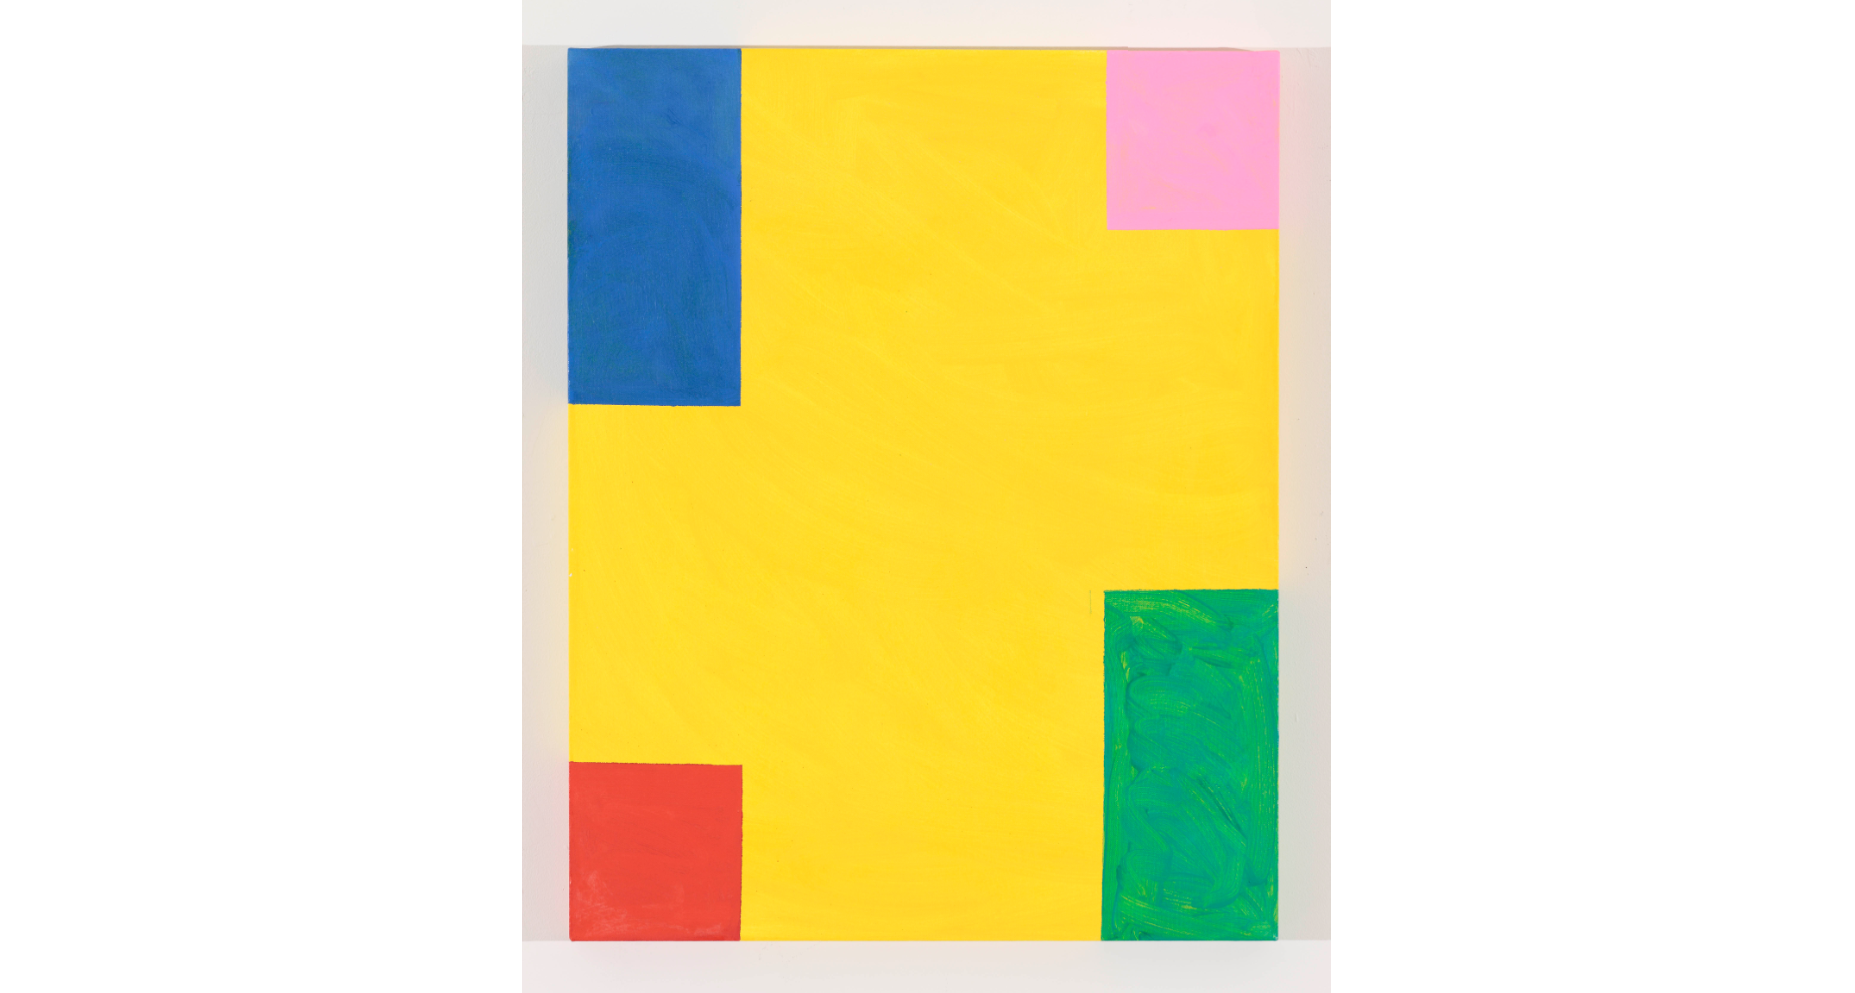 (Mary Heilmann: 'Taste of Honey', 2011. ©Mary Heilmann. Photo: Thomas Müller)